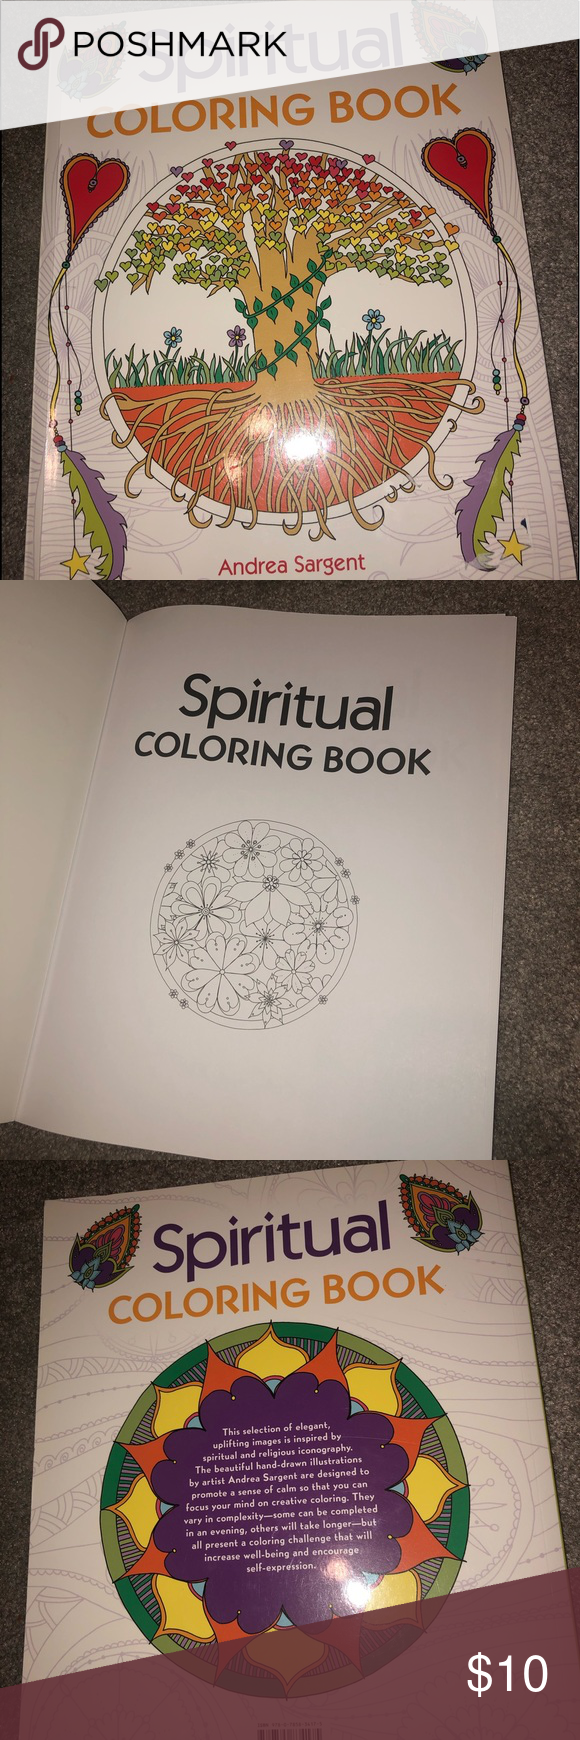 Adult coloring book Never used! In perfect condition! Chronicle Books Other #myposhpicks